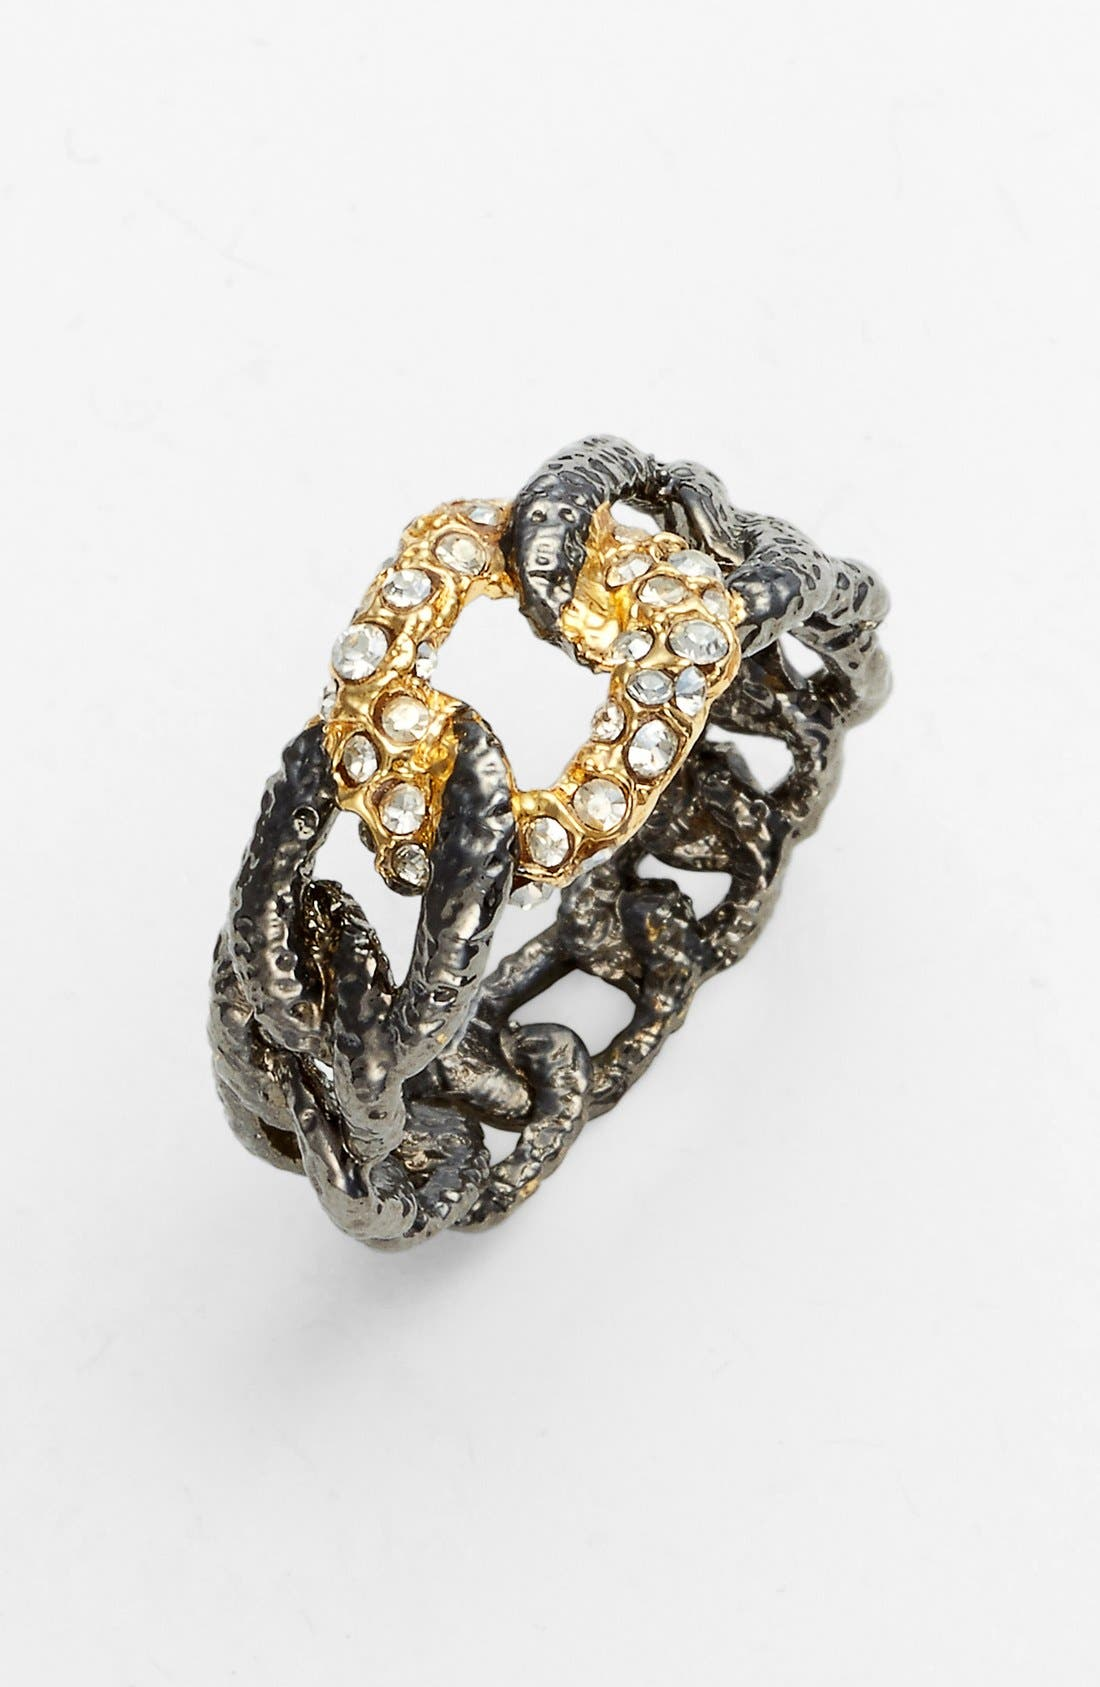 Alternate Image 1 Selected - Alexis Bittar 'Elements - Jardin de Papillon' Chain Link Ring